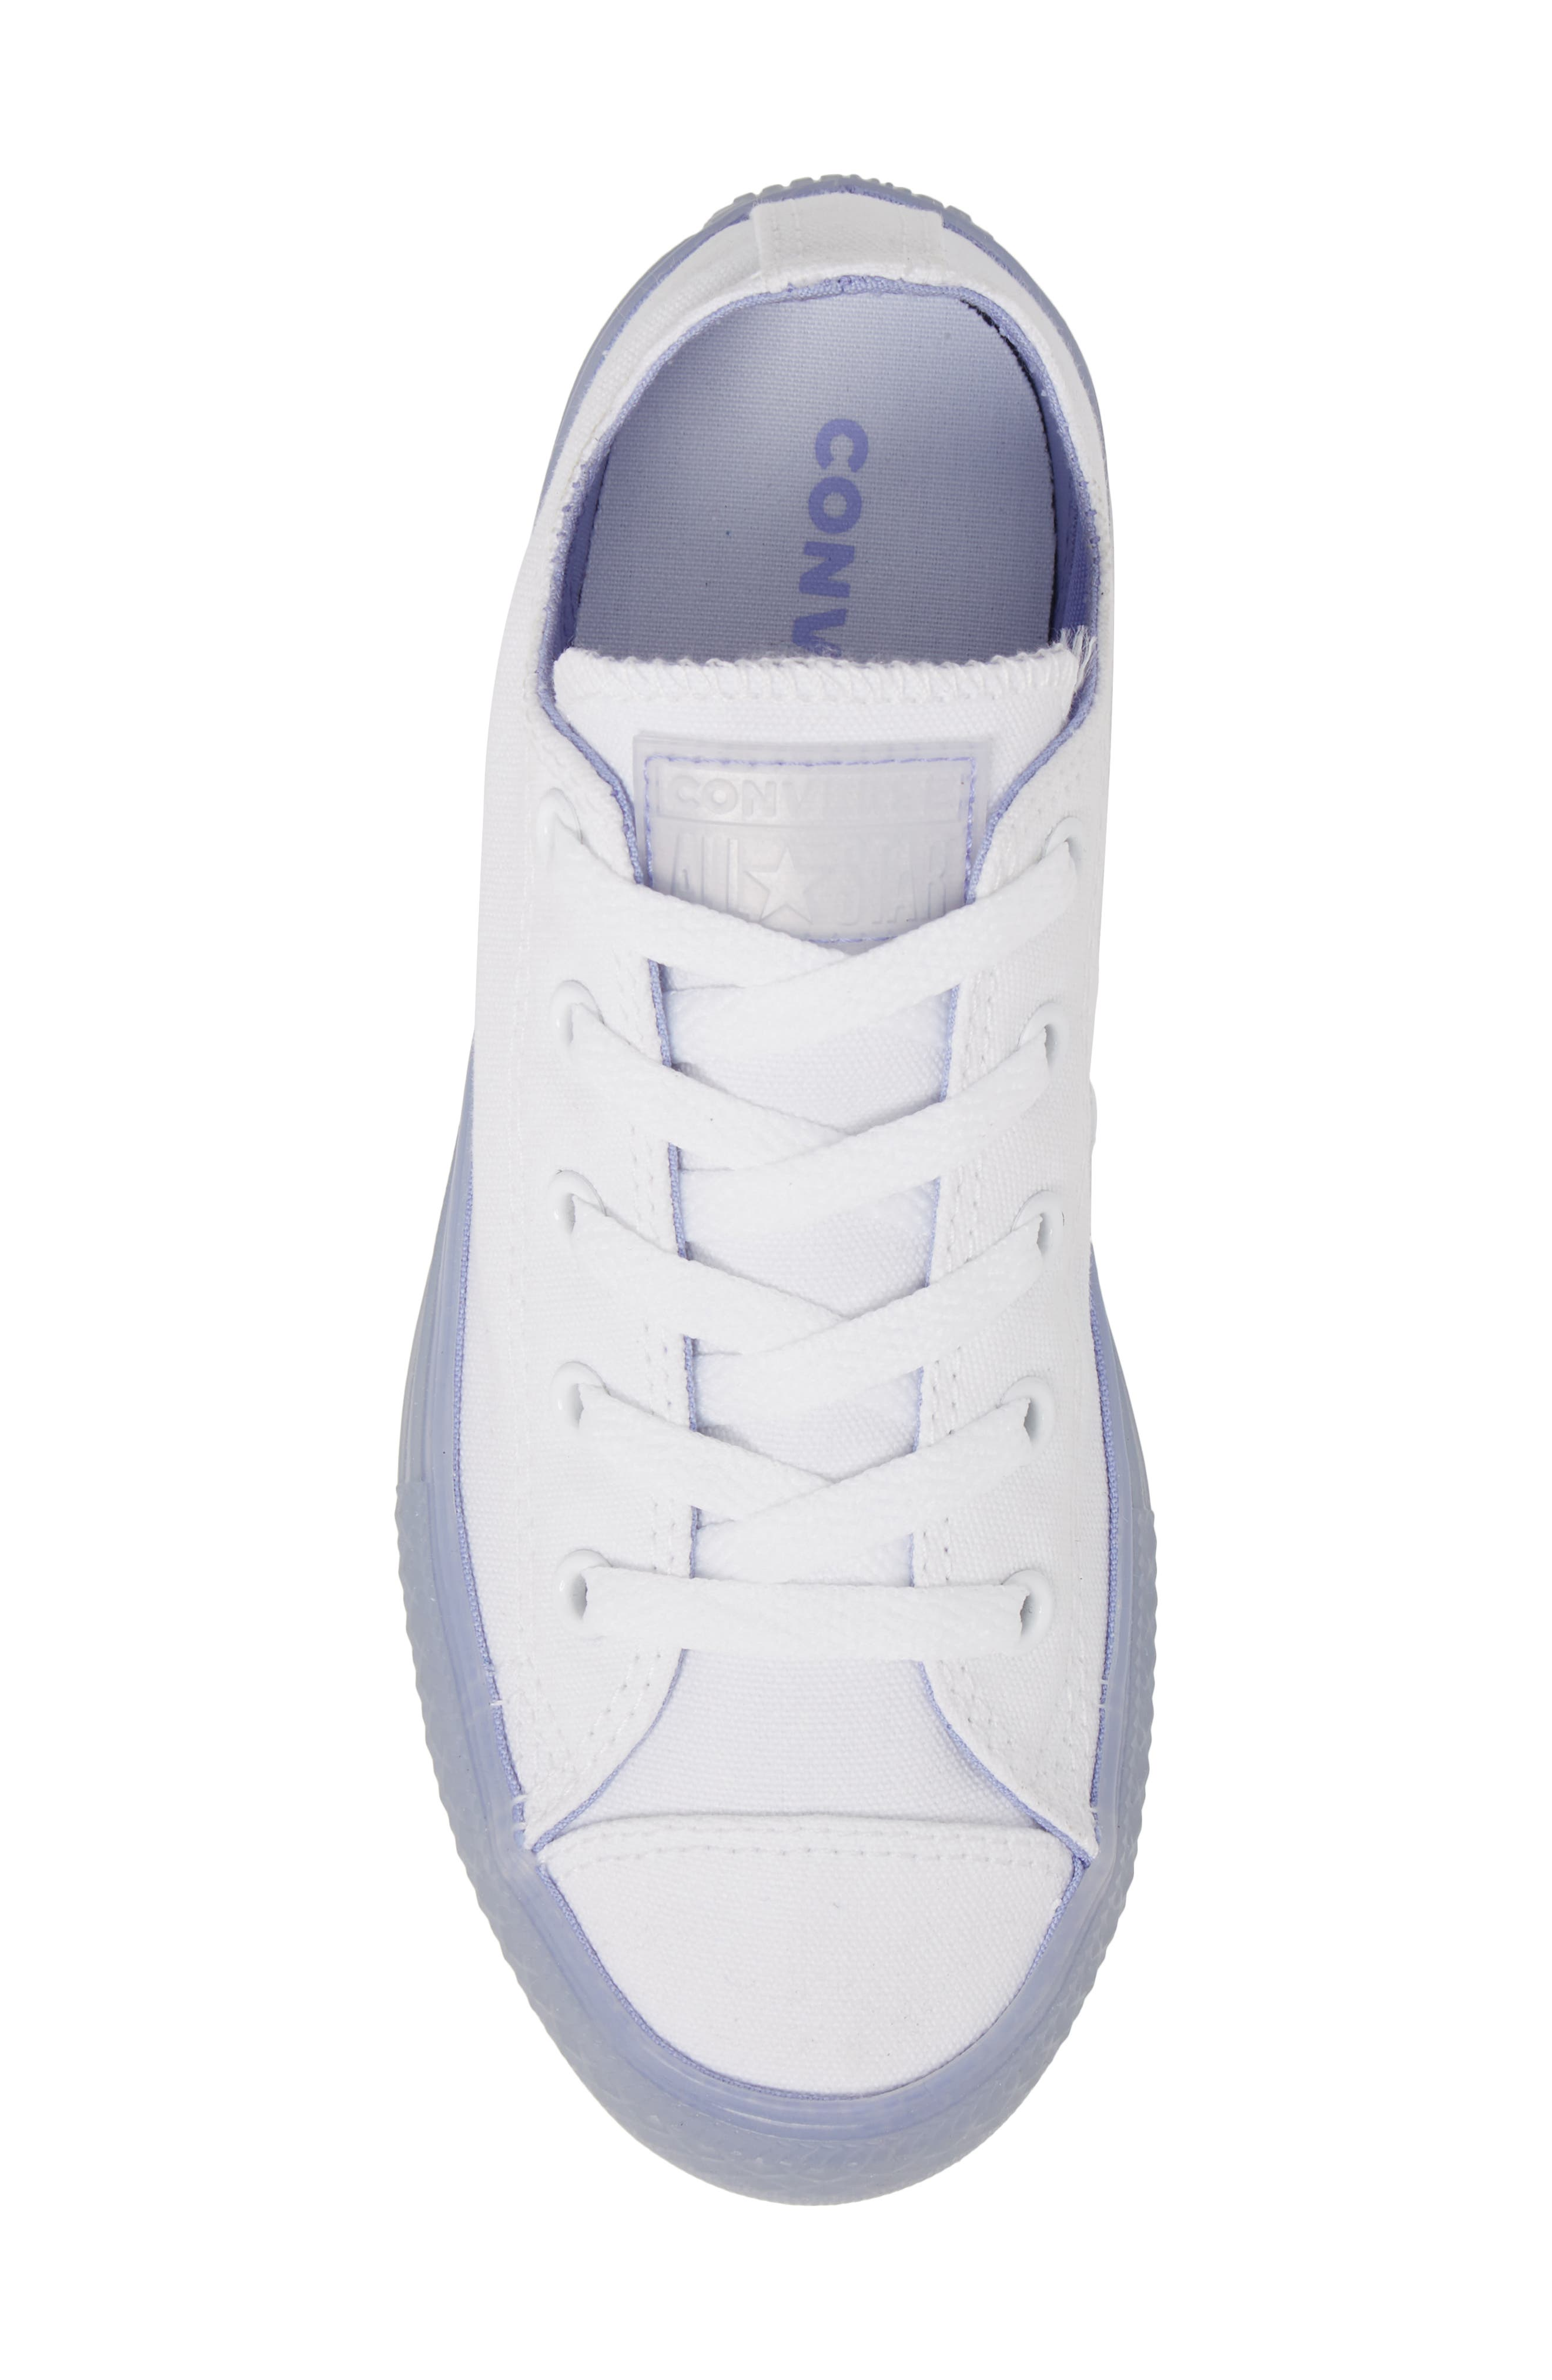 Chuck Taylor<sup>®</sup> All Star<sup>®</sup> Jelly Low Top Sneaker,                             Alternate thumbnail 5, color,                             503